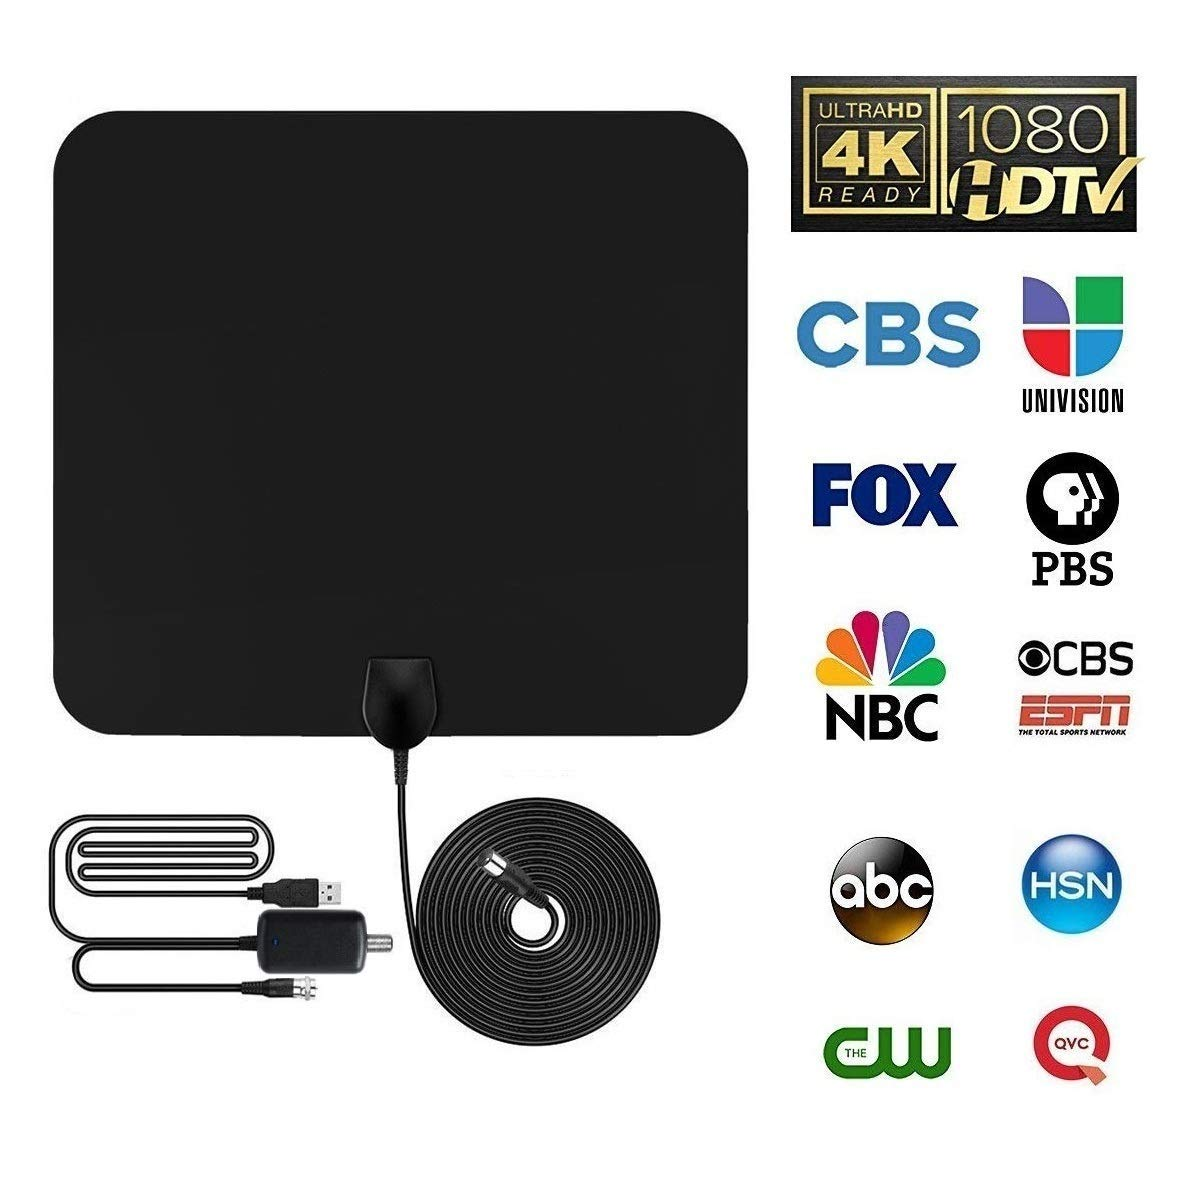 AOOP HDTV Antenna, Indoor Digital Amplified TV Antenna 80-100 Miles Range with Adjustable Amplifier Signal Booster for 1080P 4K Free TV Channels, Amplified 13.12ft Coax Cable